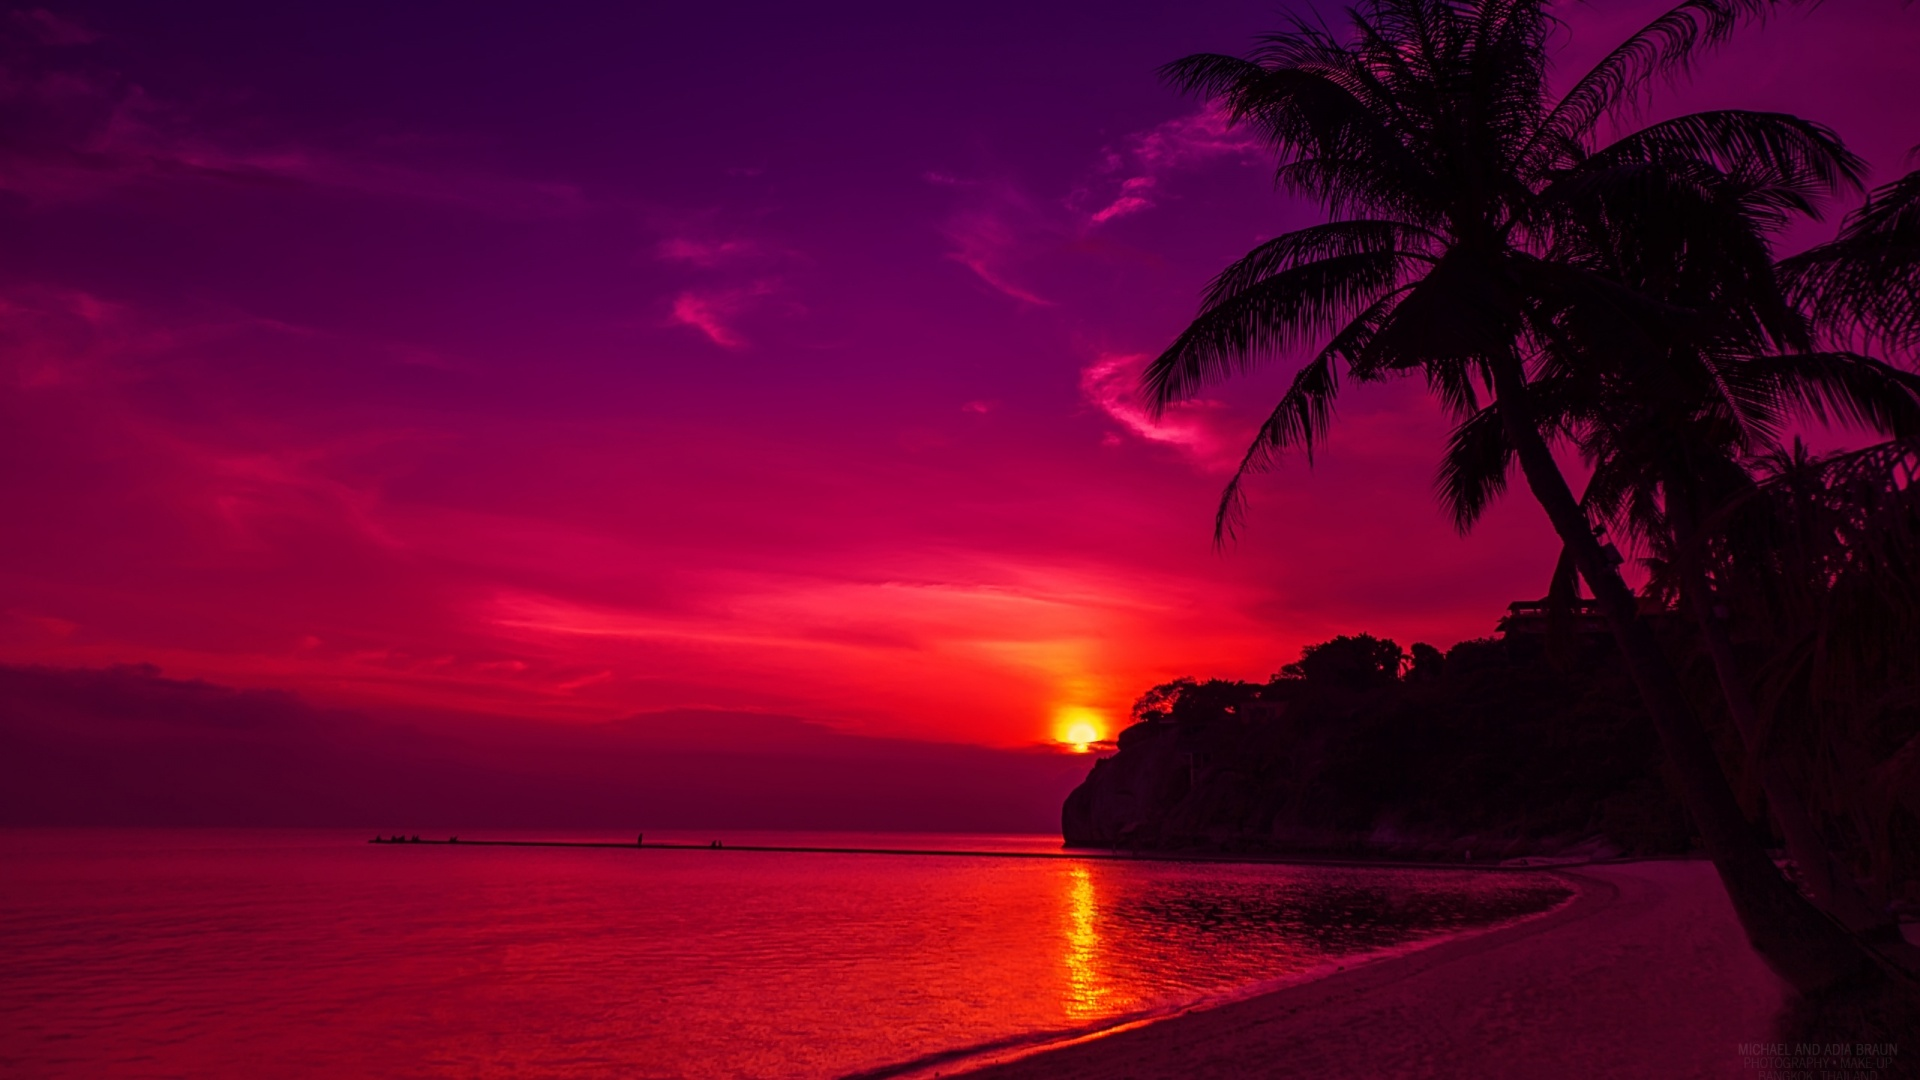 Thailand Beach Sunset Wallpapers HD Wallpapers 1920x1080